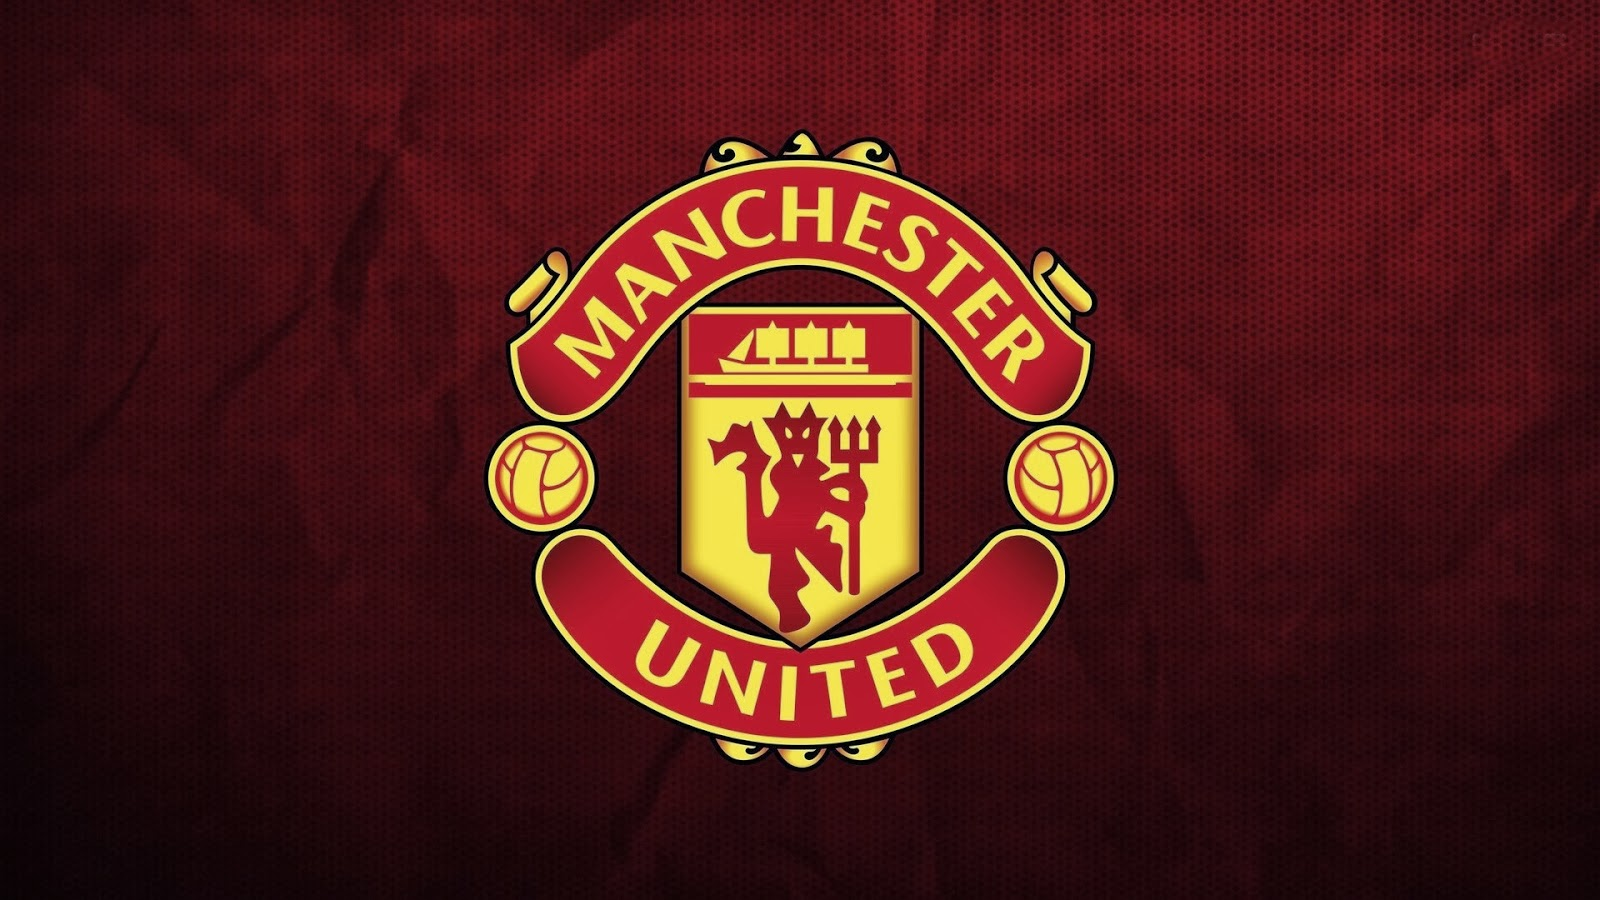 Manchester united fc logo hd wallpaper 2014 2015 football wallpapers